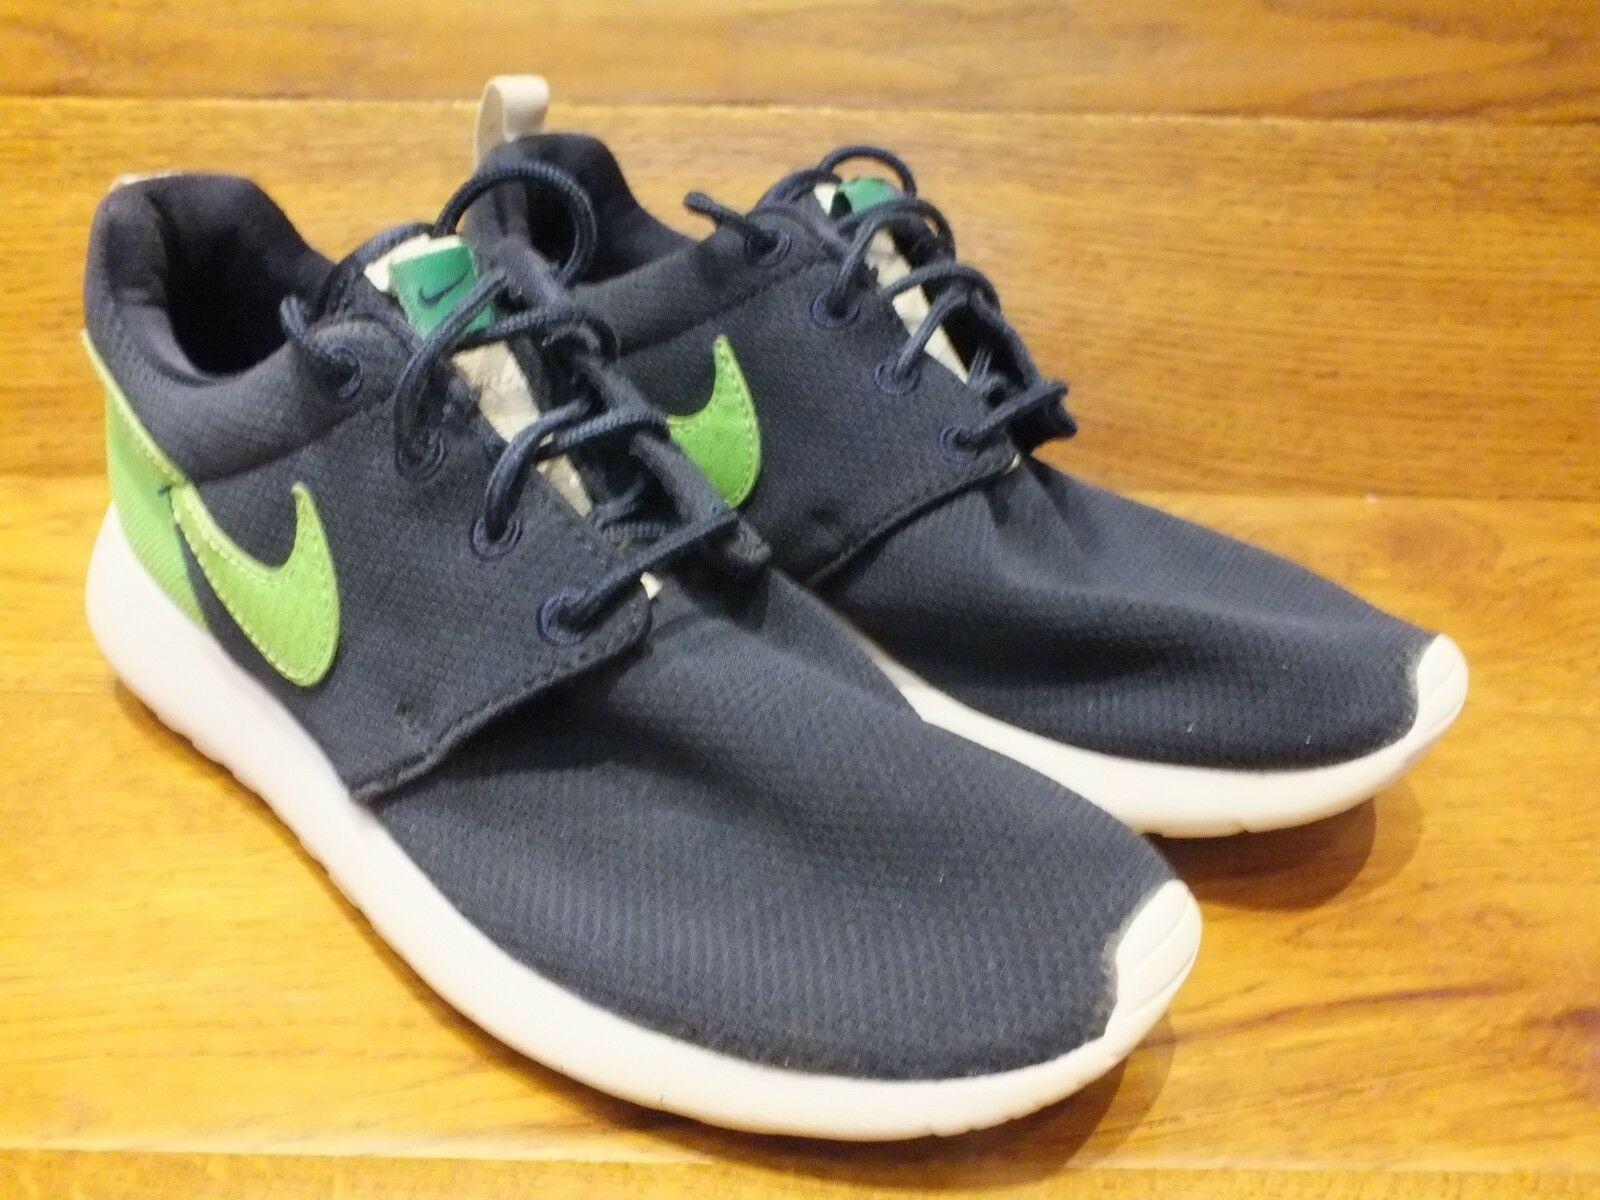 Nike Roshe One Navy / Green Running Shoes Casual Trainers  The most popular shoes for men and women